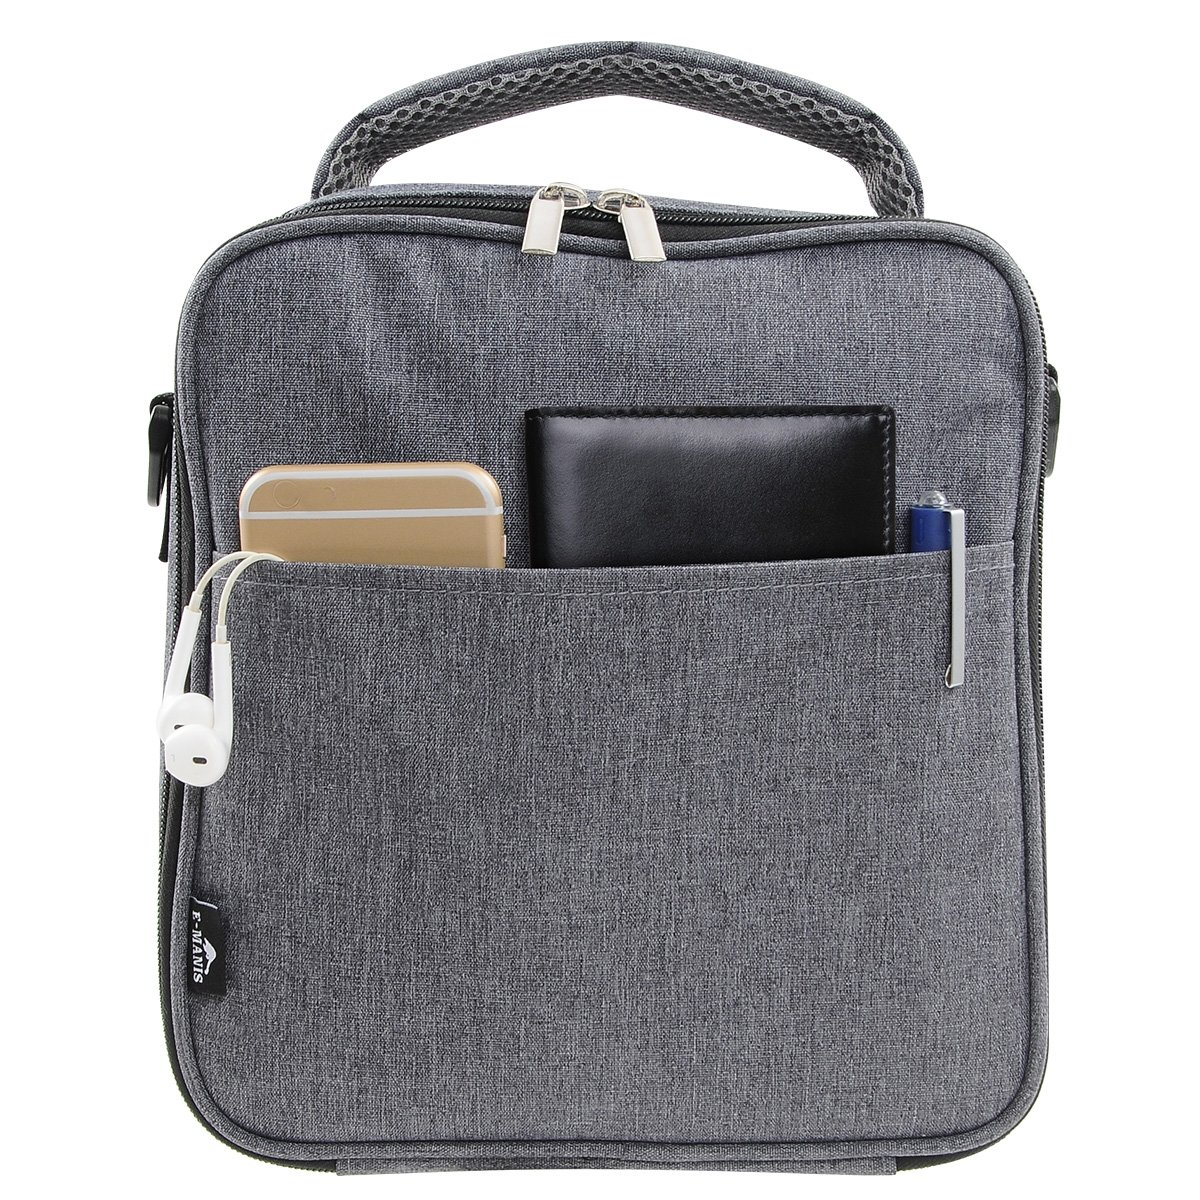 Details about E-manis Insulated Lunch Bag Lunch Box Cooler Bag with Shoulder  Strap for Men 7ee7fdc4b038e